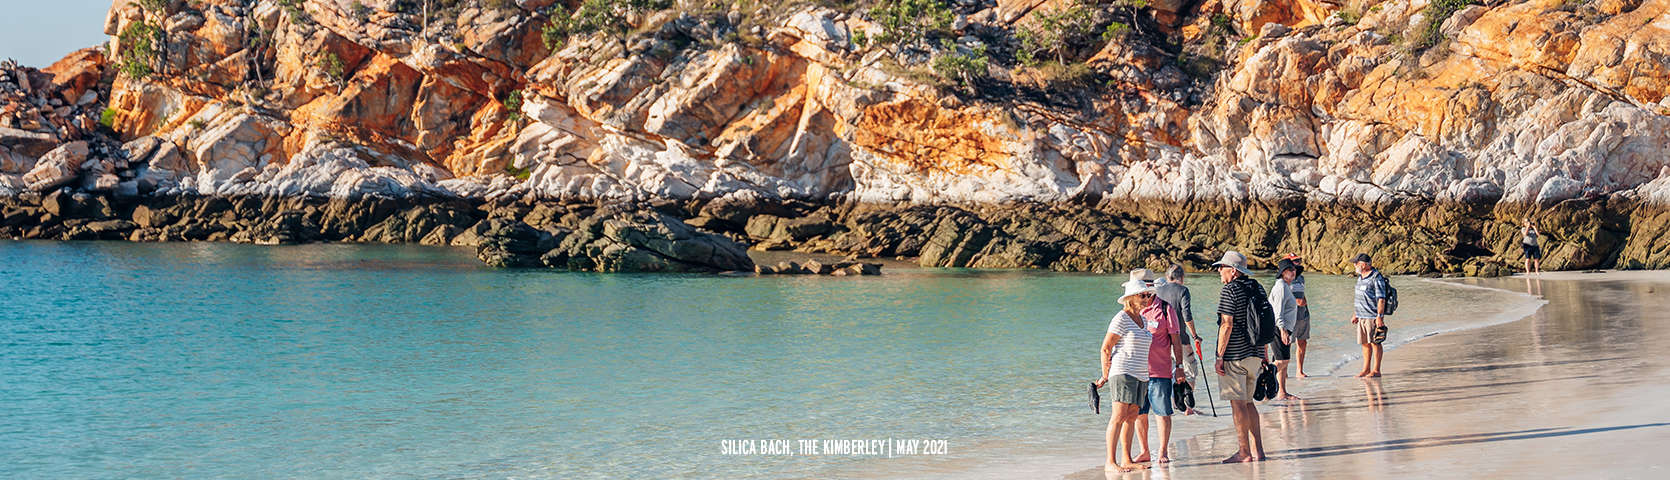 Silica-Beach-The-Kimberley-Western-Australia-May-2021-Coral-Expeditions